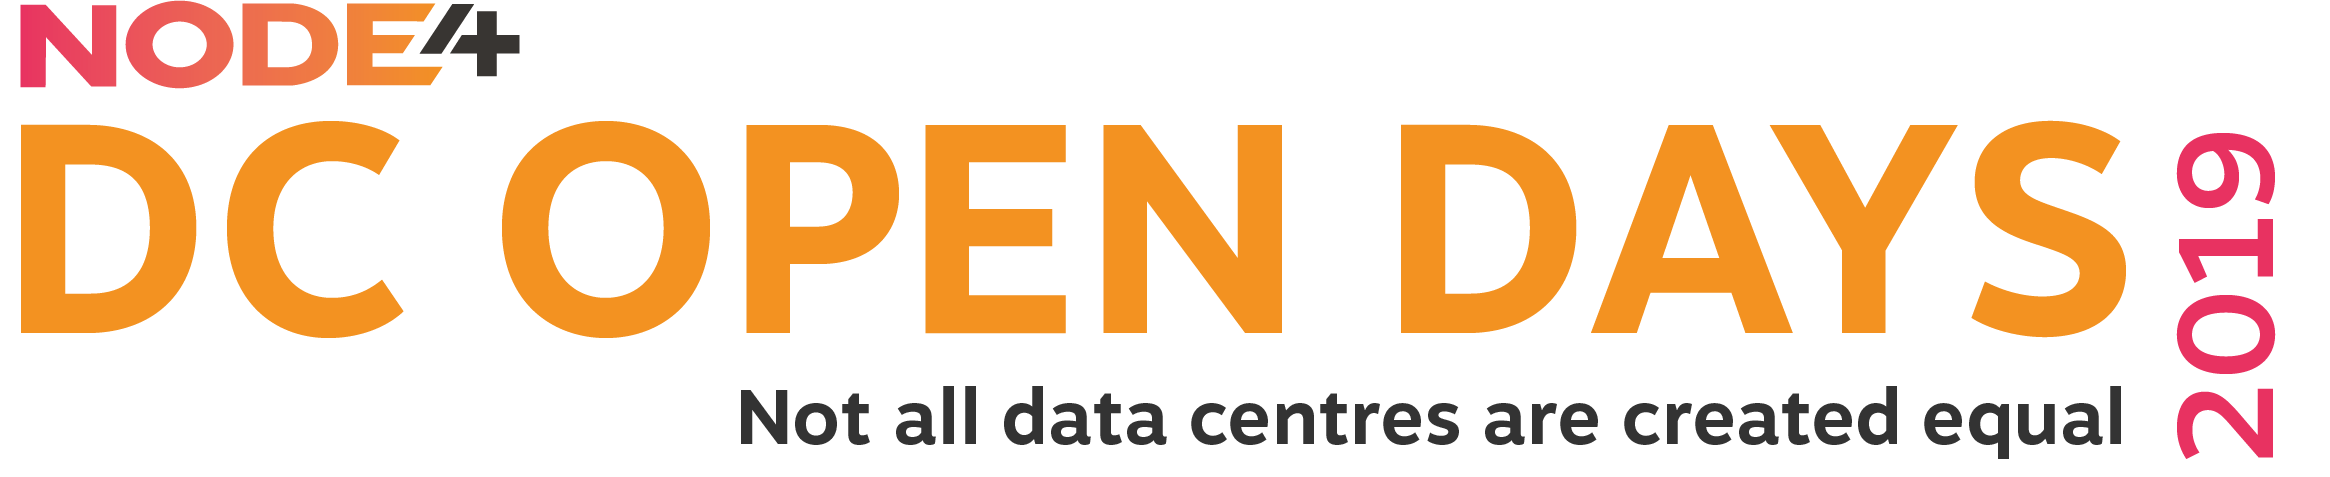 Open Day 2019 Logo_4.png